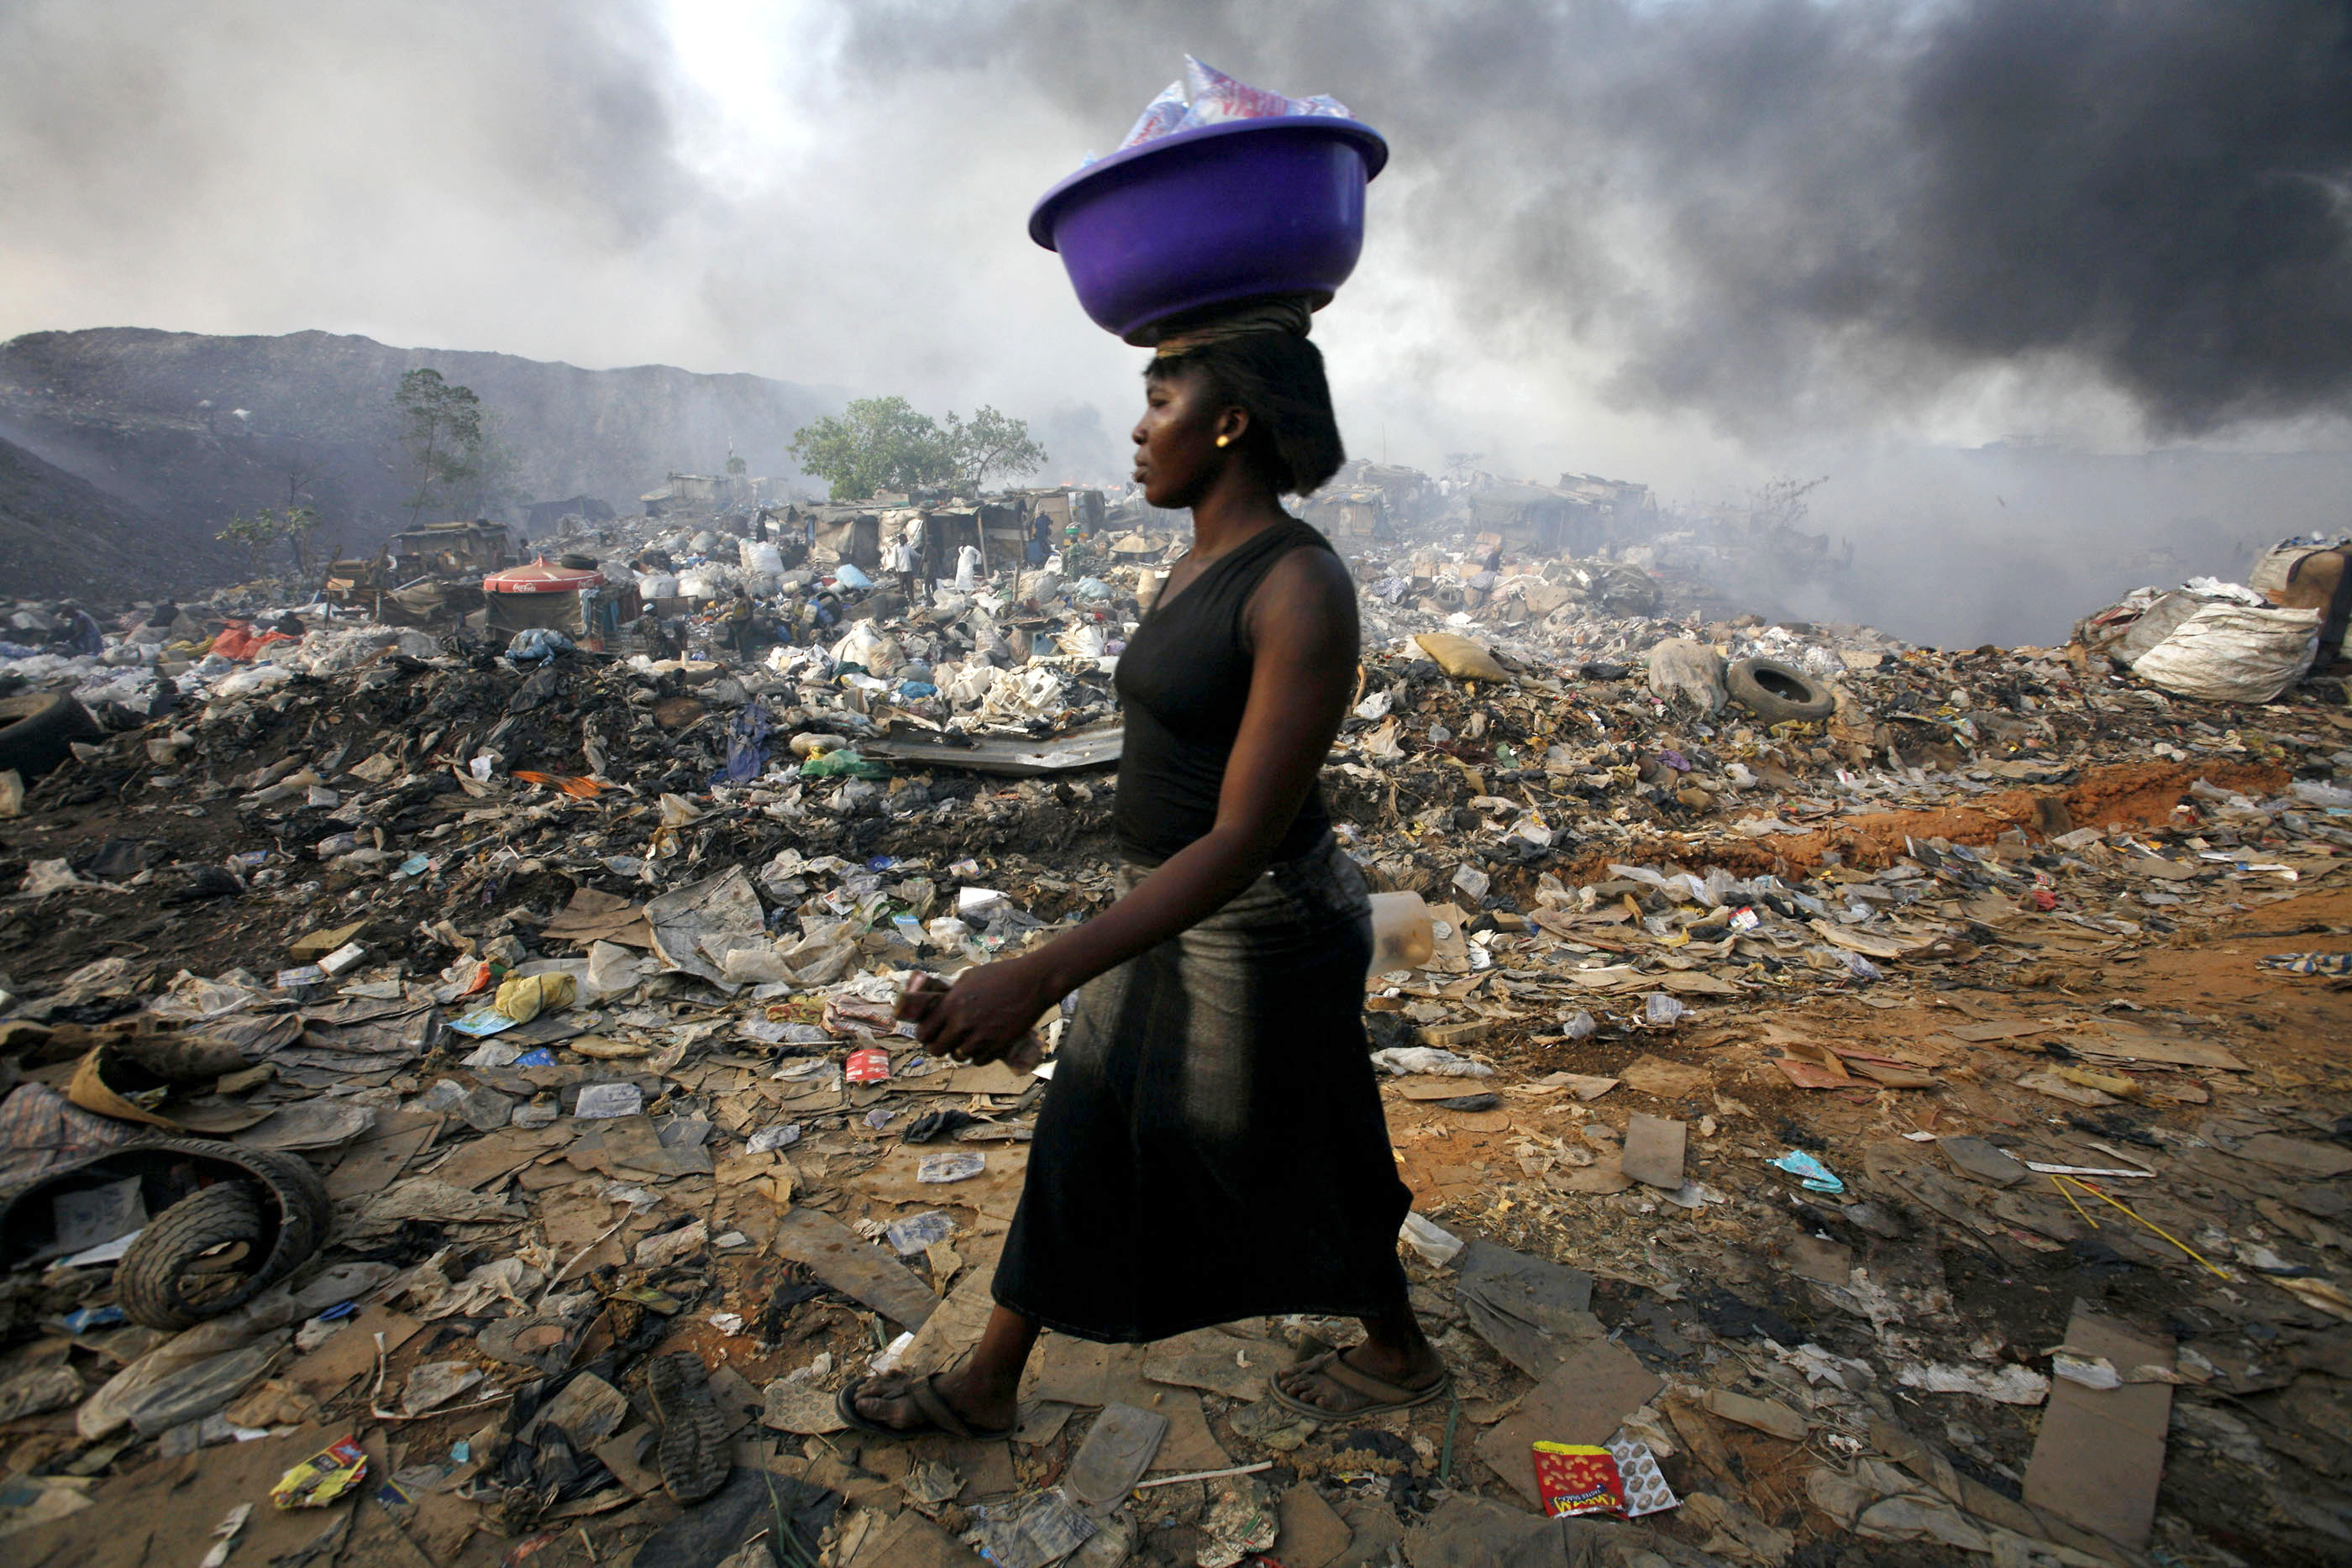 A woman walks through Olusosun rubbish dump in Nigeria's commercial capital Lagos.